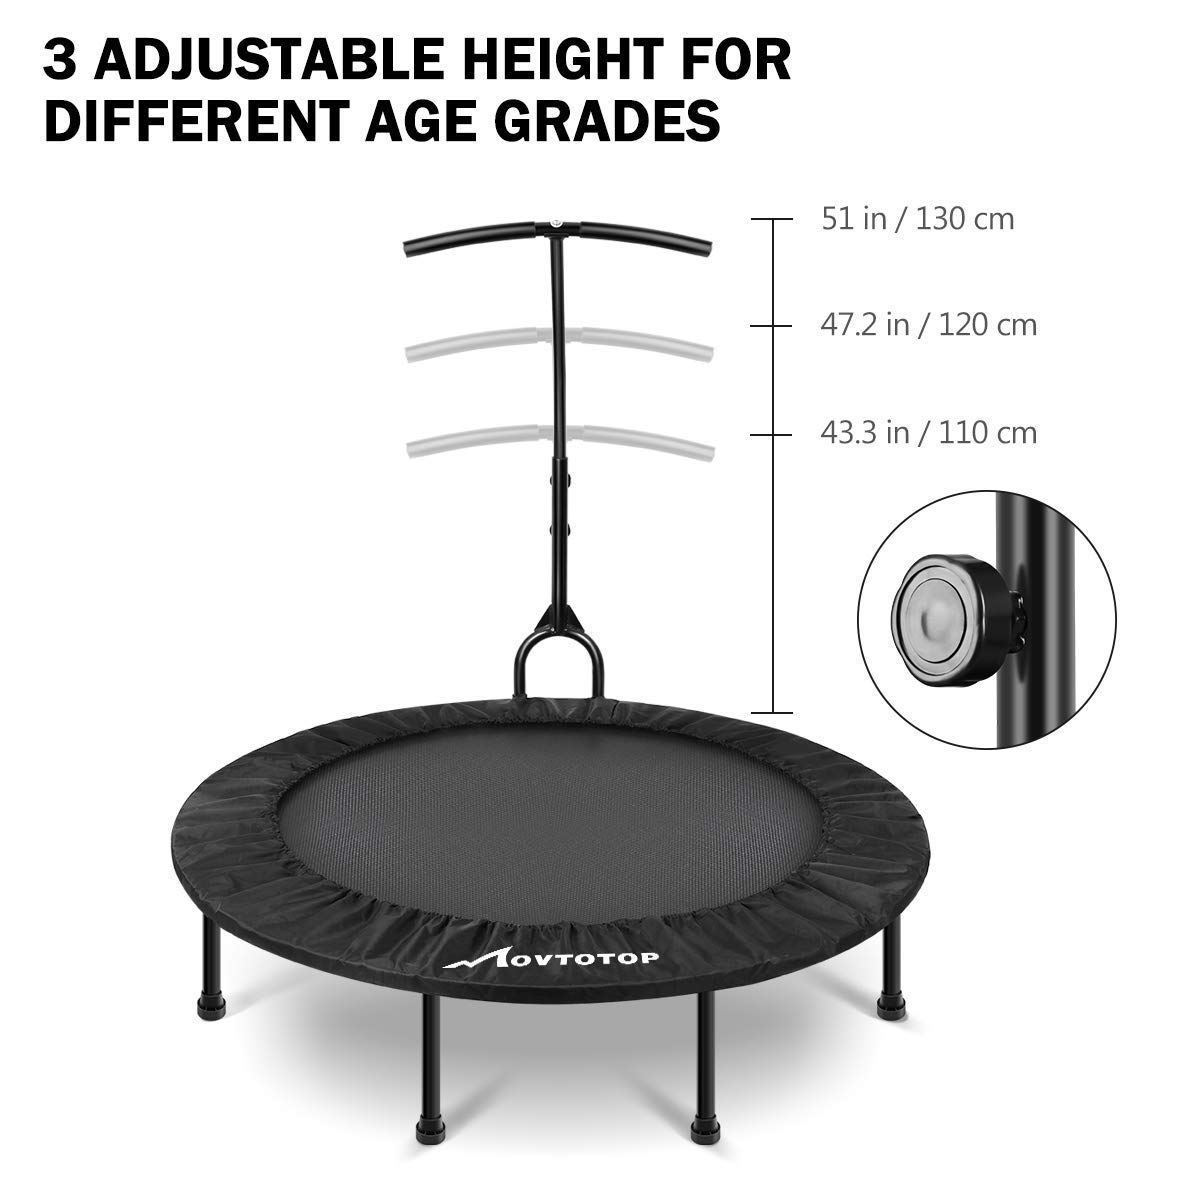 MOVTOTOP 48 40 Inch Indoor Trampoline, Folding Mini Trampoline with Adjustable Handrail and Safety Pad, Exercise Rebounder for Kids Adults-Black (40 Inch-Foldable) by MOVTOTOP (Image #6)